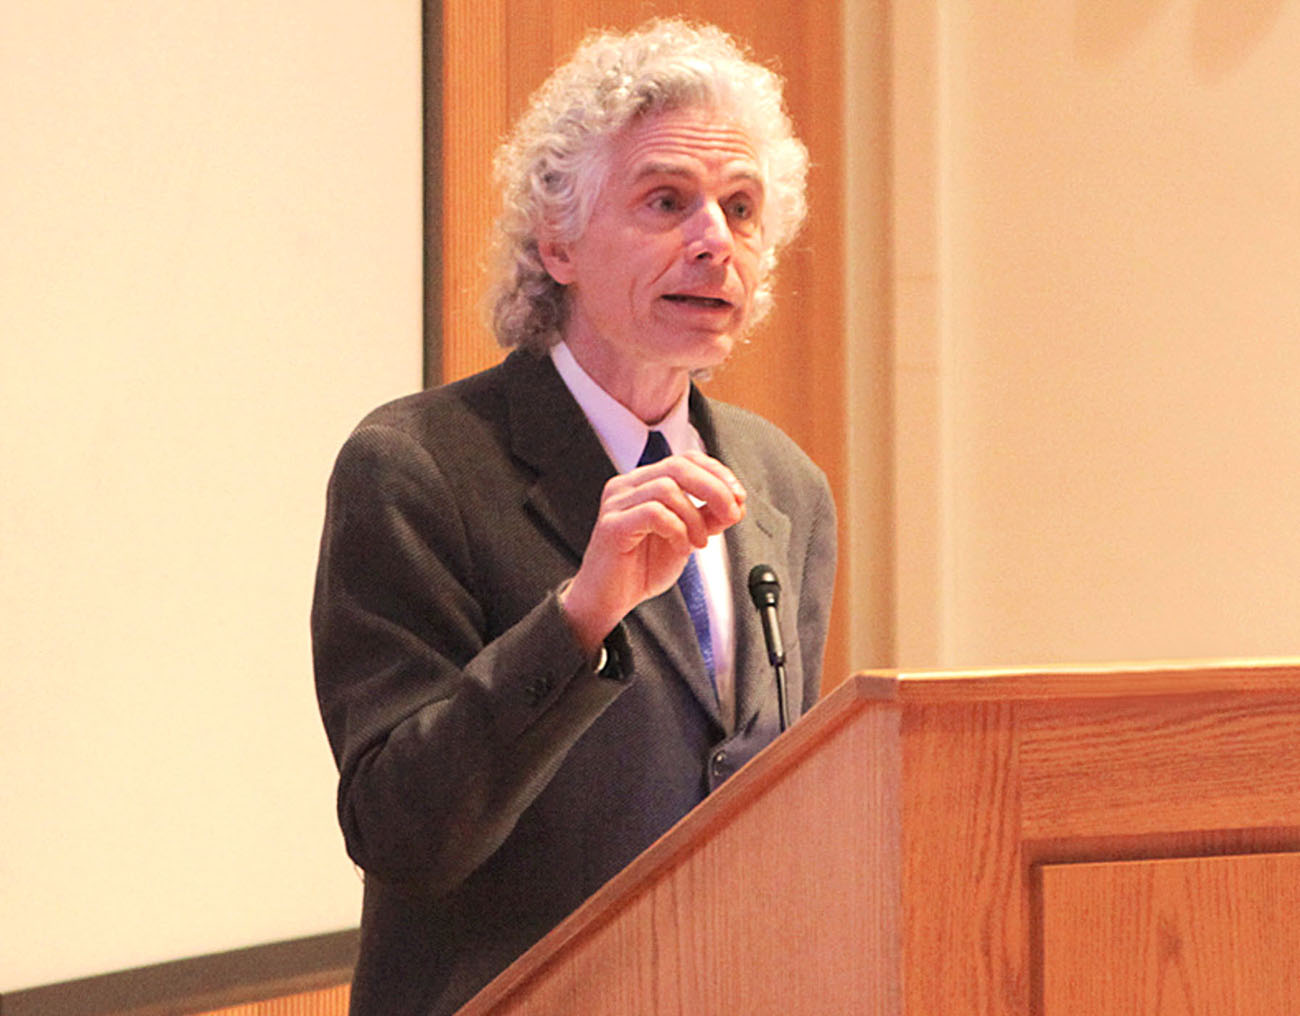 steven pinker violence essay Complete summary of steven pinker's the blank slate enotes plot summaries cover all the significant action of the blank slate.